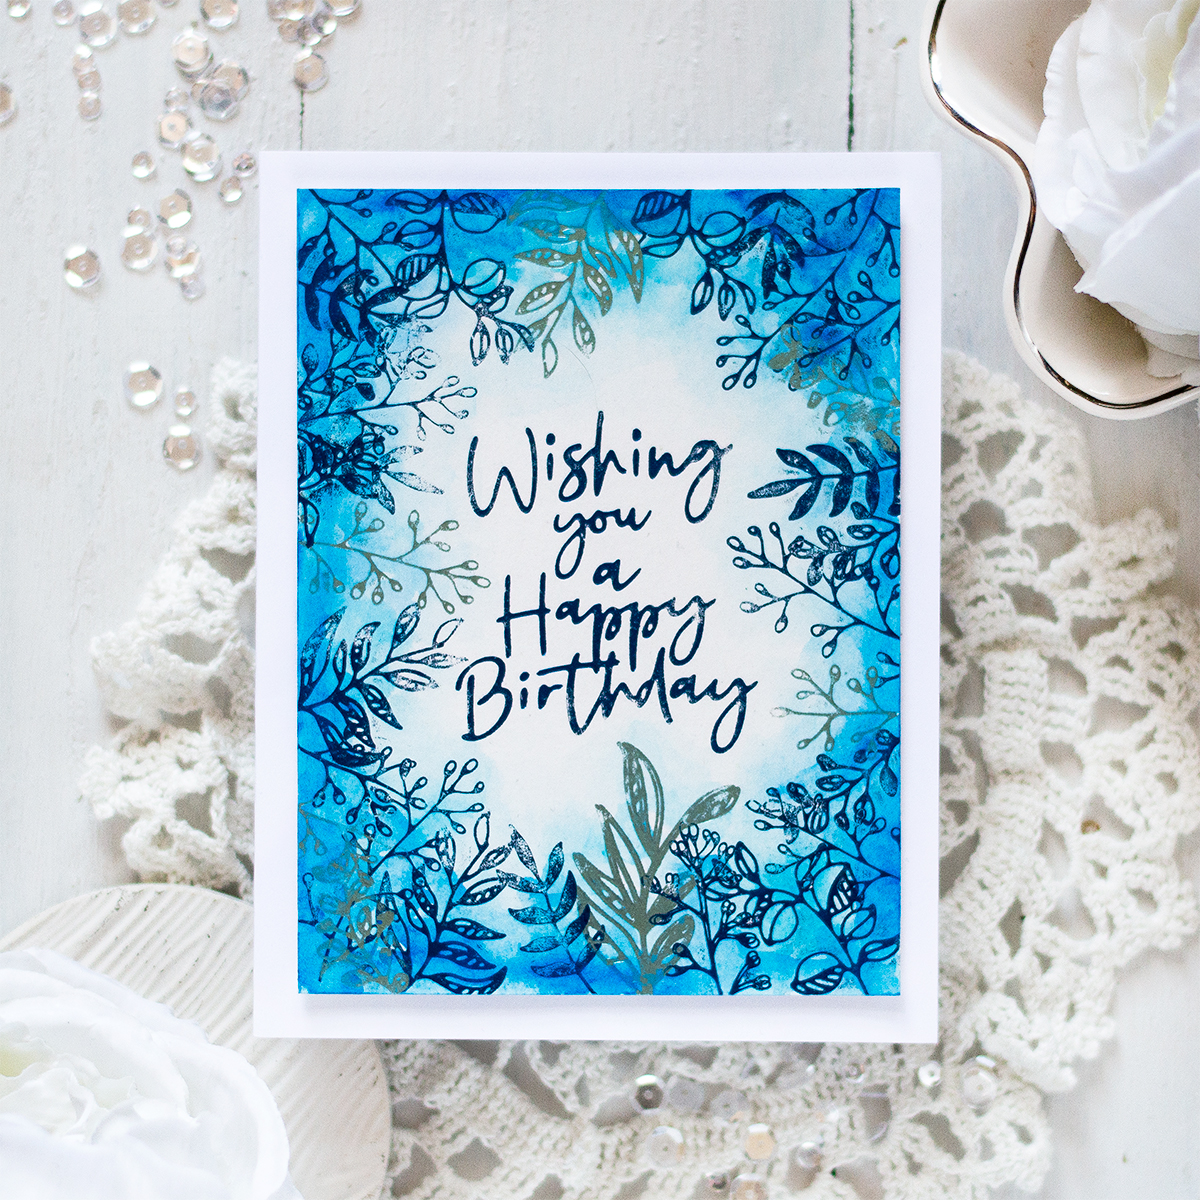 Monochromatic Foil and Watercolor Birthday Card. Card by Svitlana Shayevich